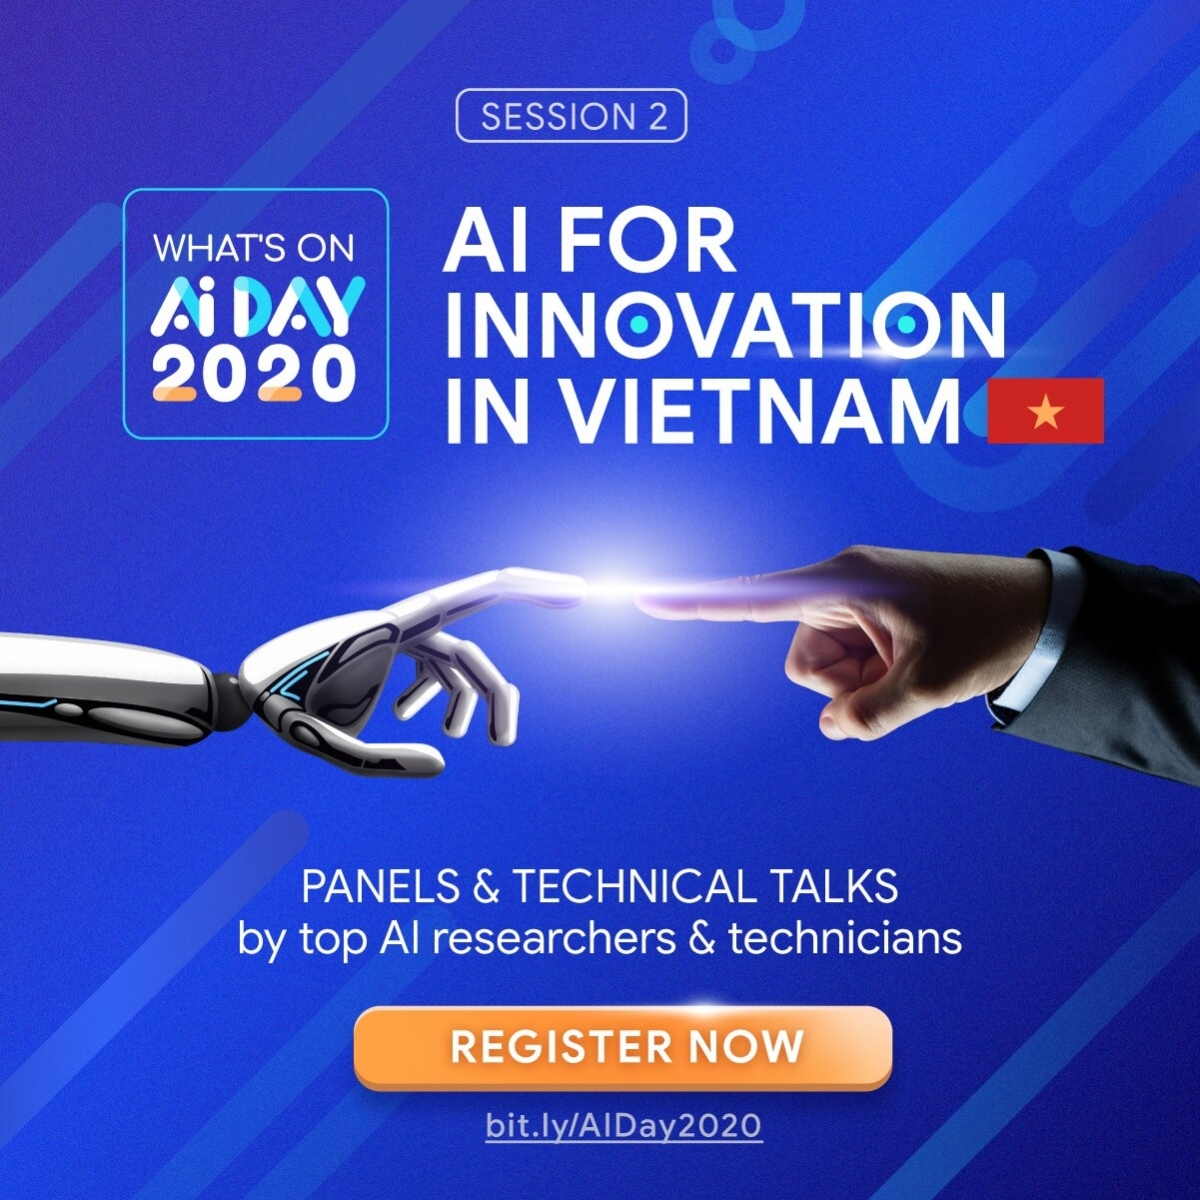 Artificial intelligence in technical innovation is one of the major themes of AI Day 2020